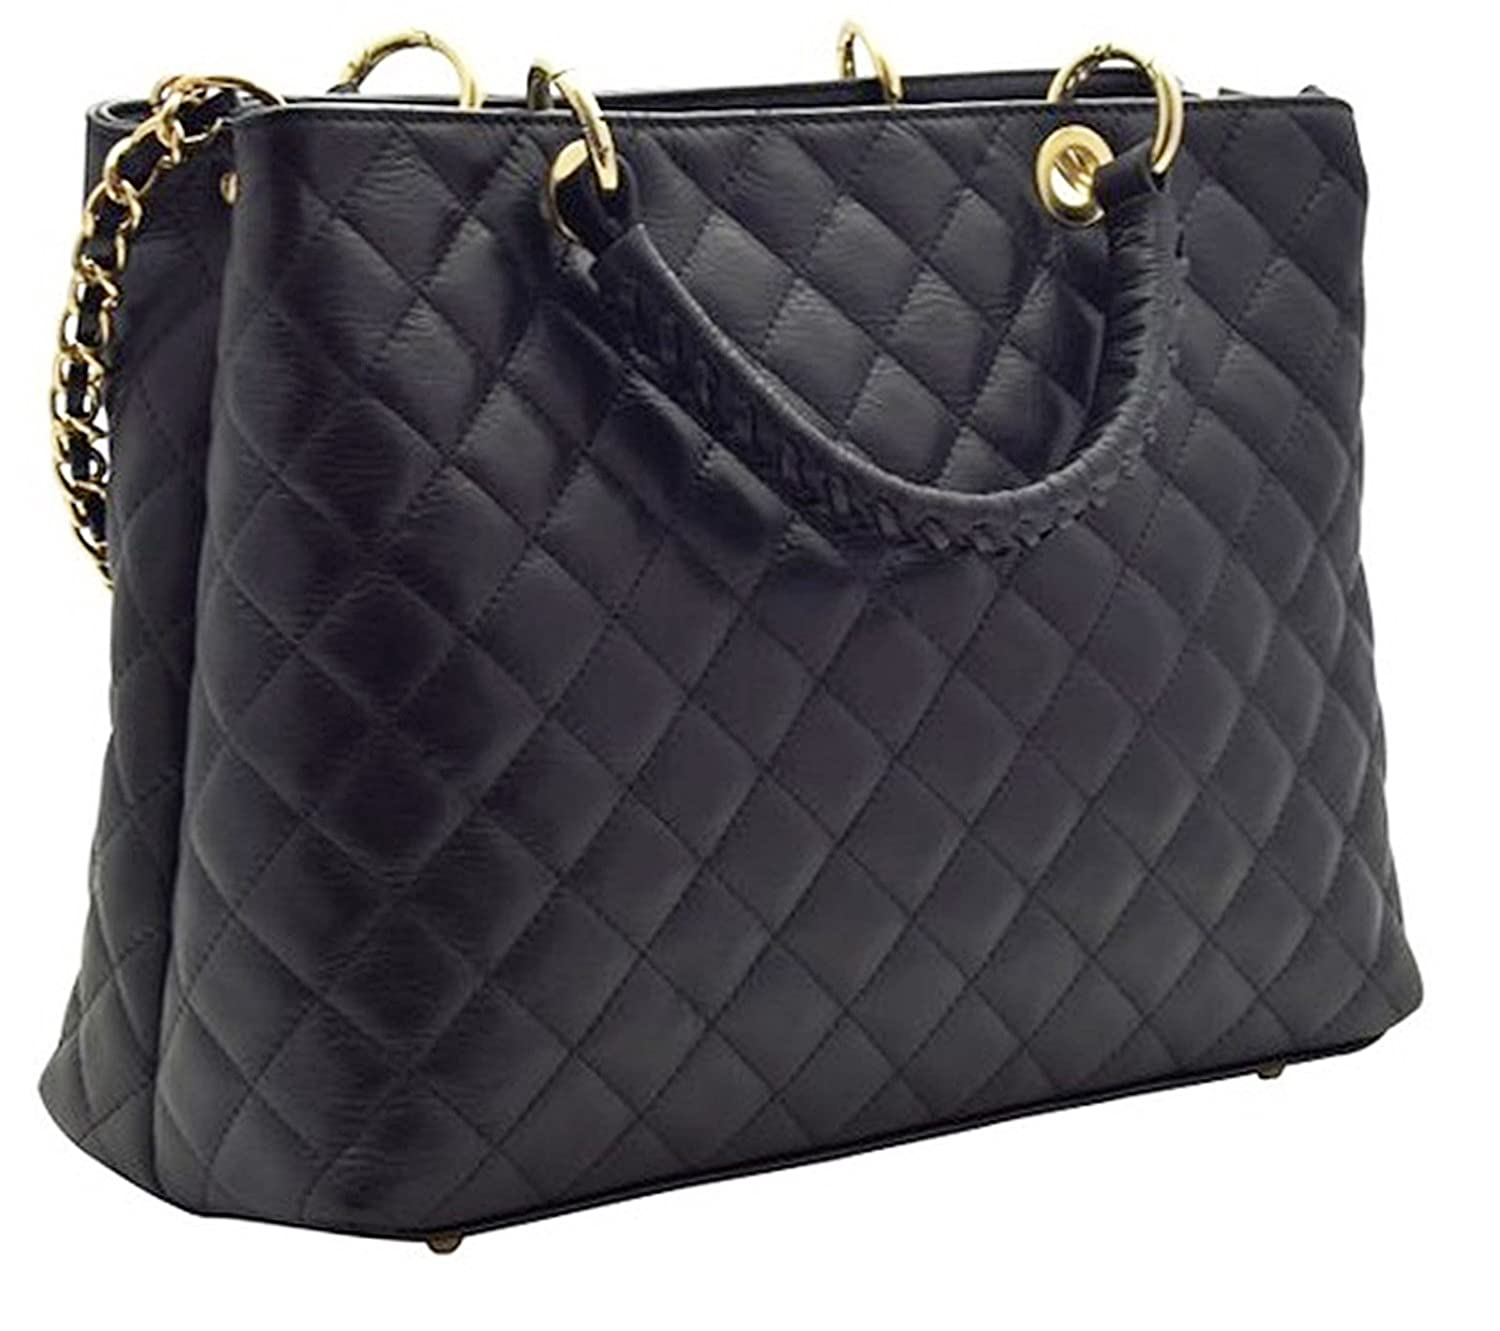 1f612a43f044aa Handbag Bliss Italian Leather Large Quilted Designer Inspired Classic  Handbag & Shoulder Bag (Black): Amazon.co.uk: Luggage